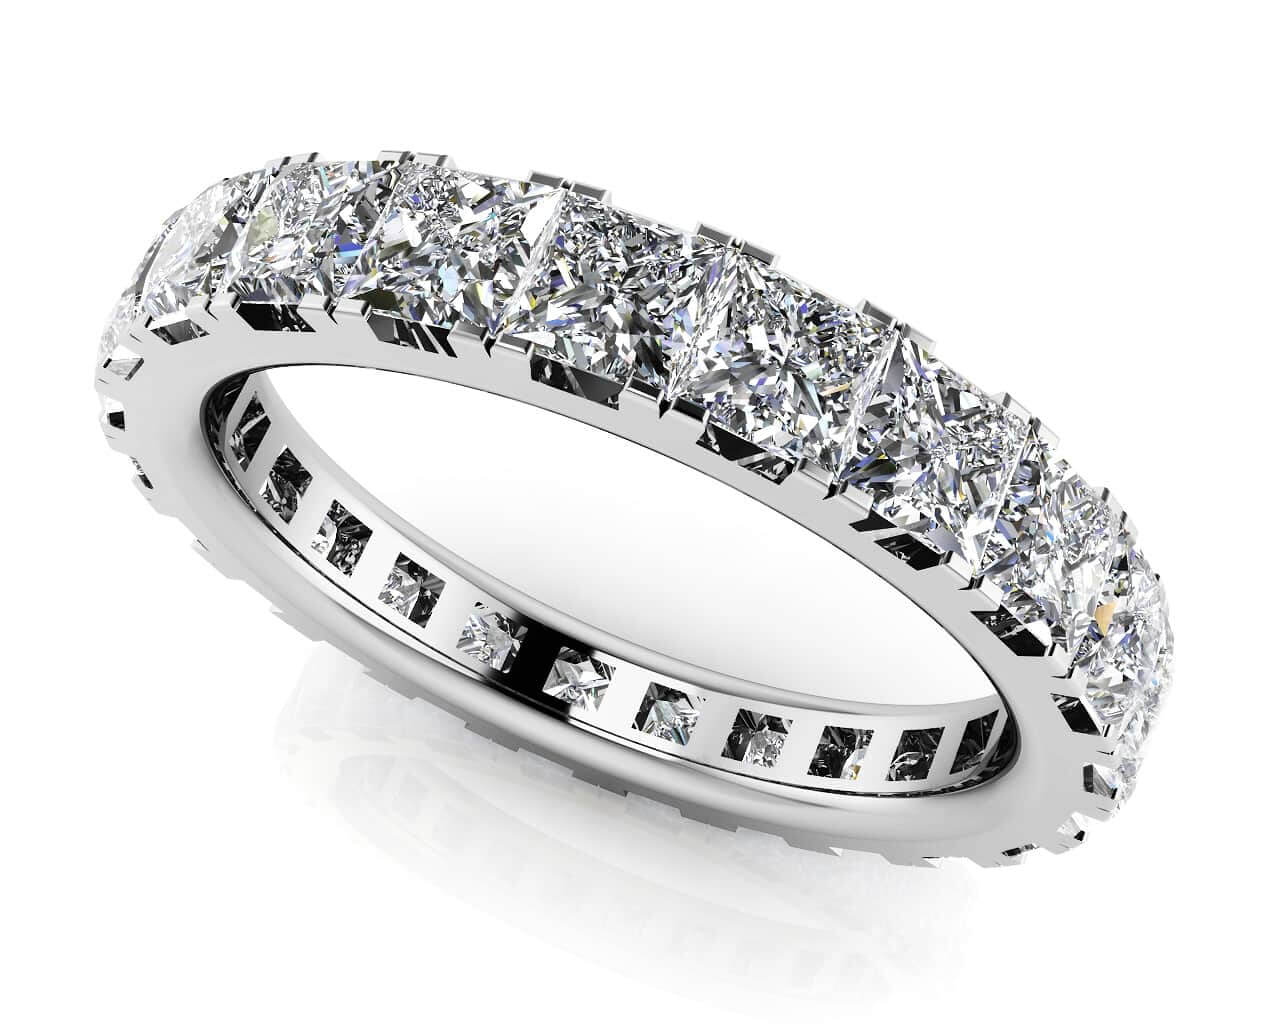 bands ring cut princess full eternity carat wedding diamond platinum band